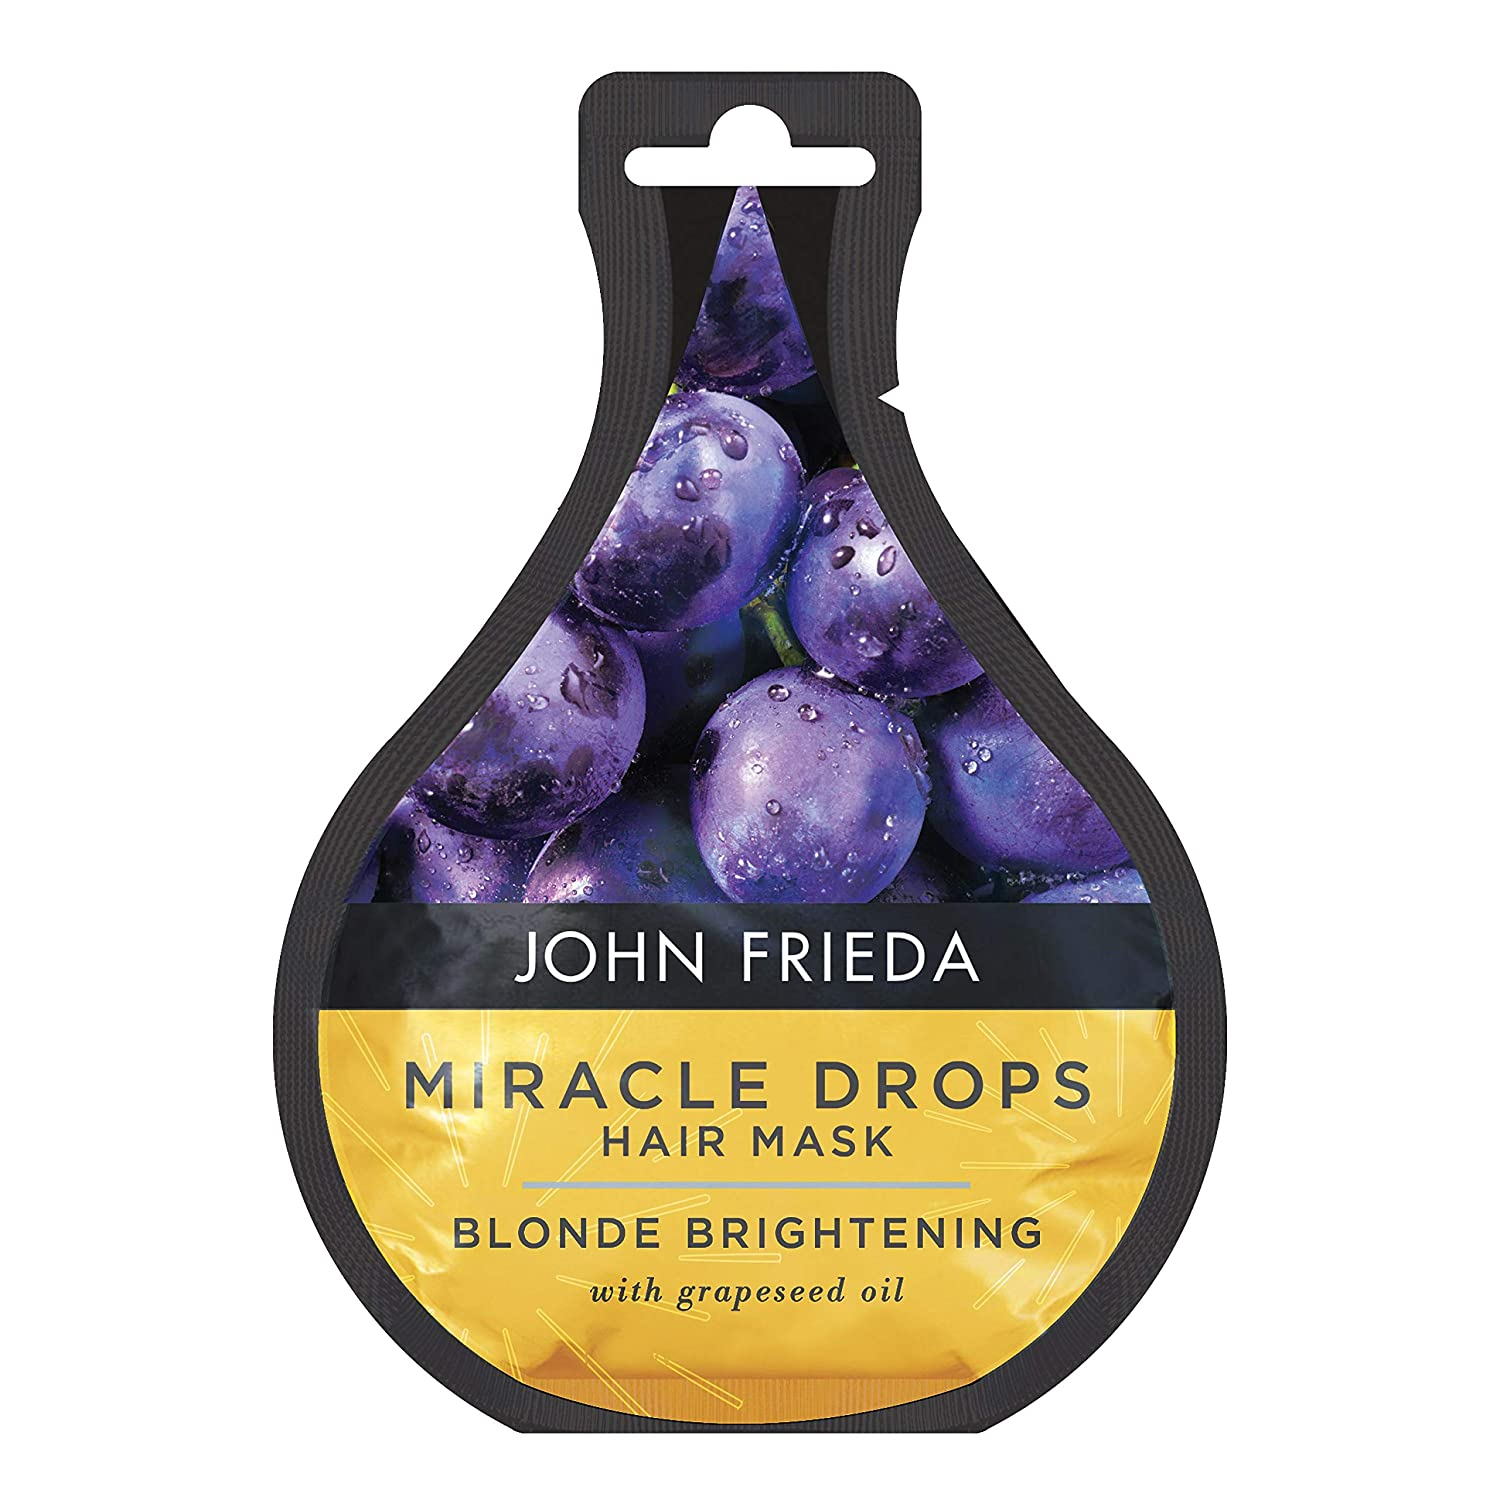 Max 89% OFF John Frieda Miracle Drops Blonde Hair Max 46% OFF Mask Brightening for Blond